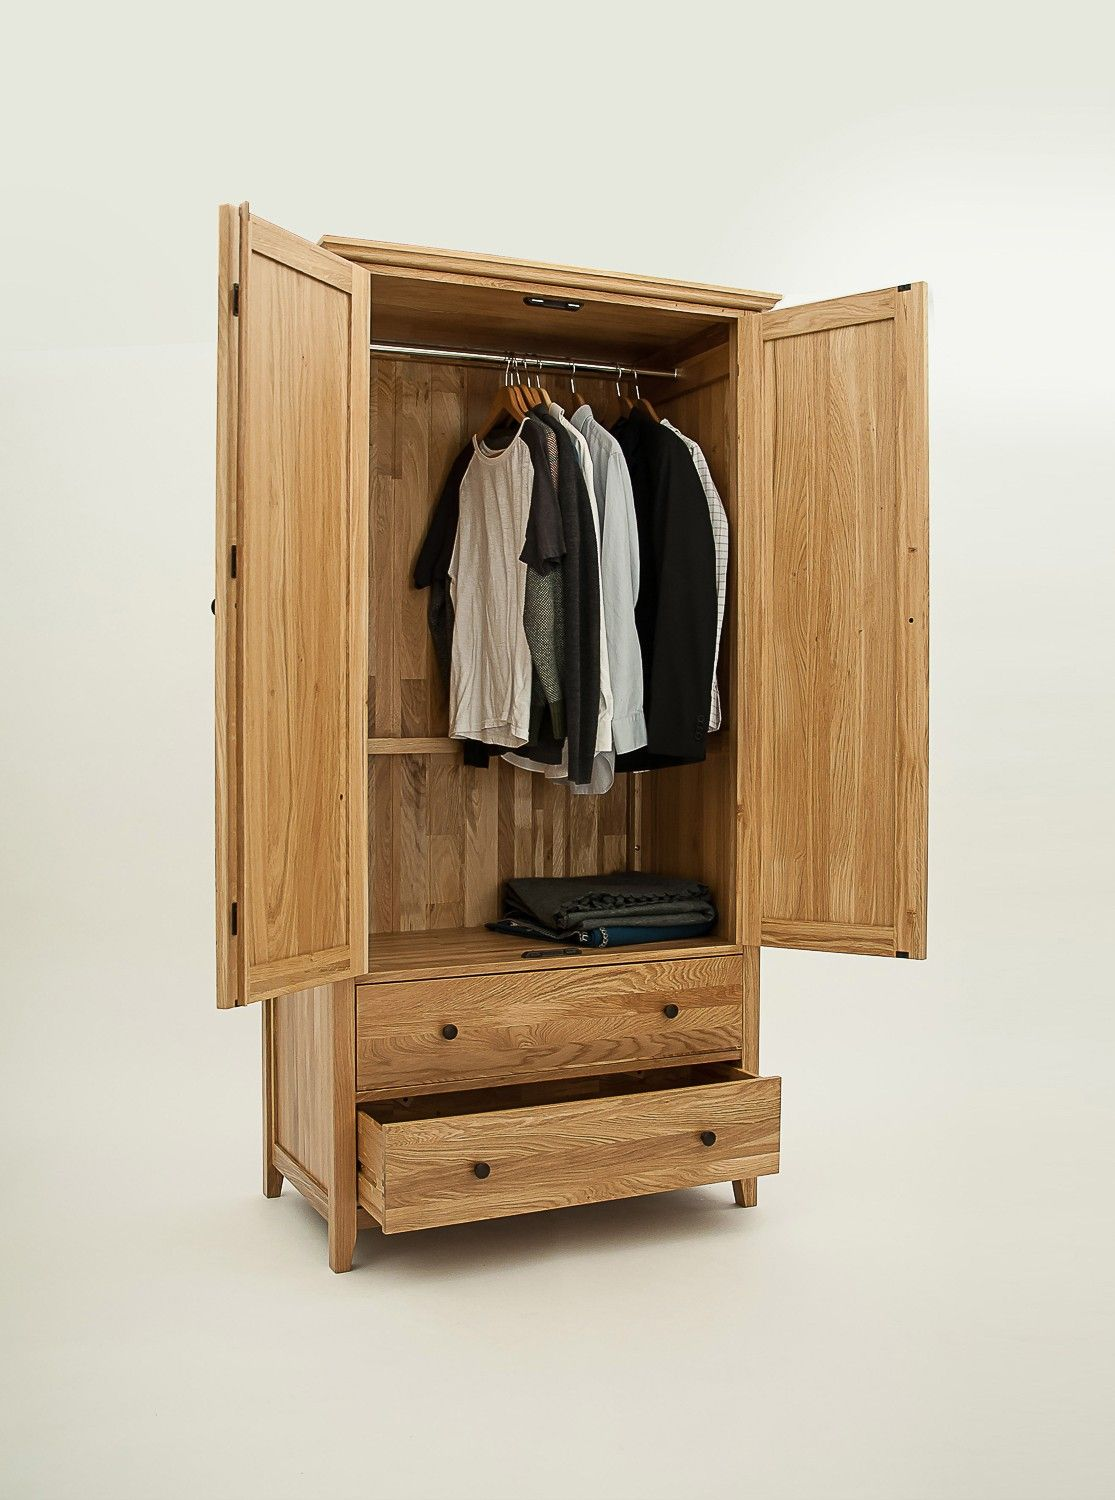 Merveilleux Hereford Rustic Oak Double Gents Wardrobe With 2 Drawers